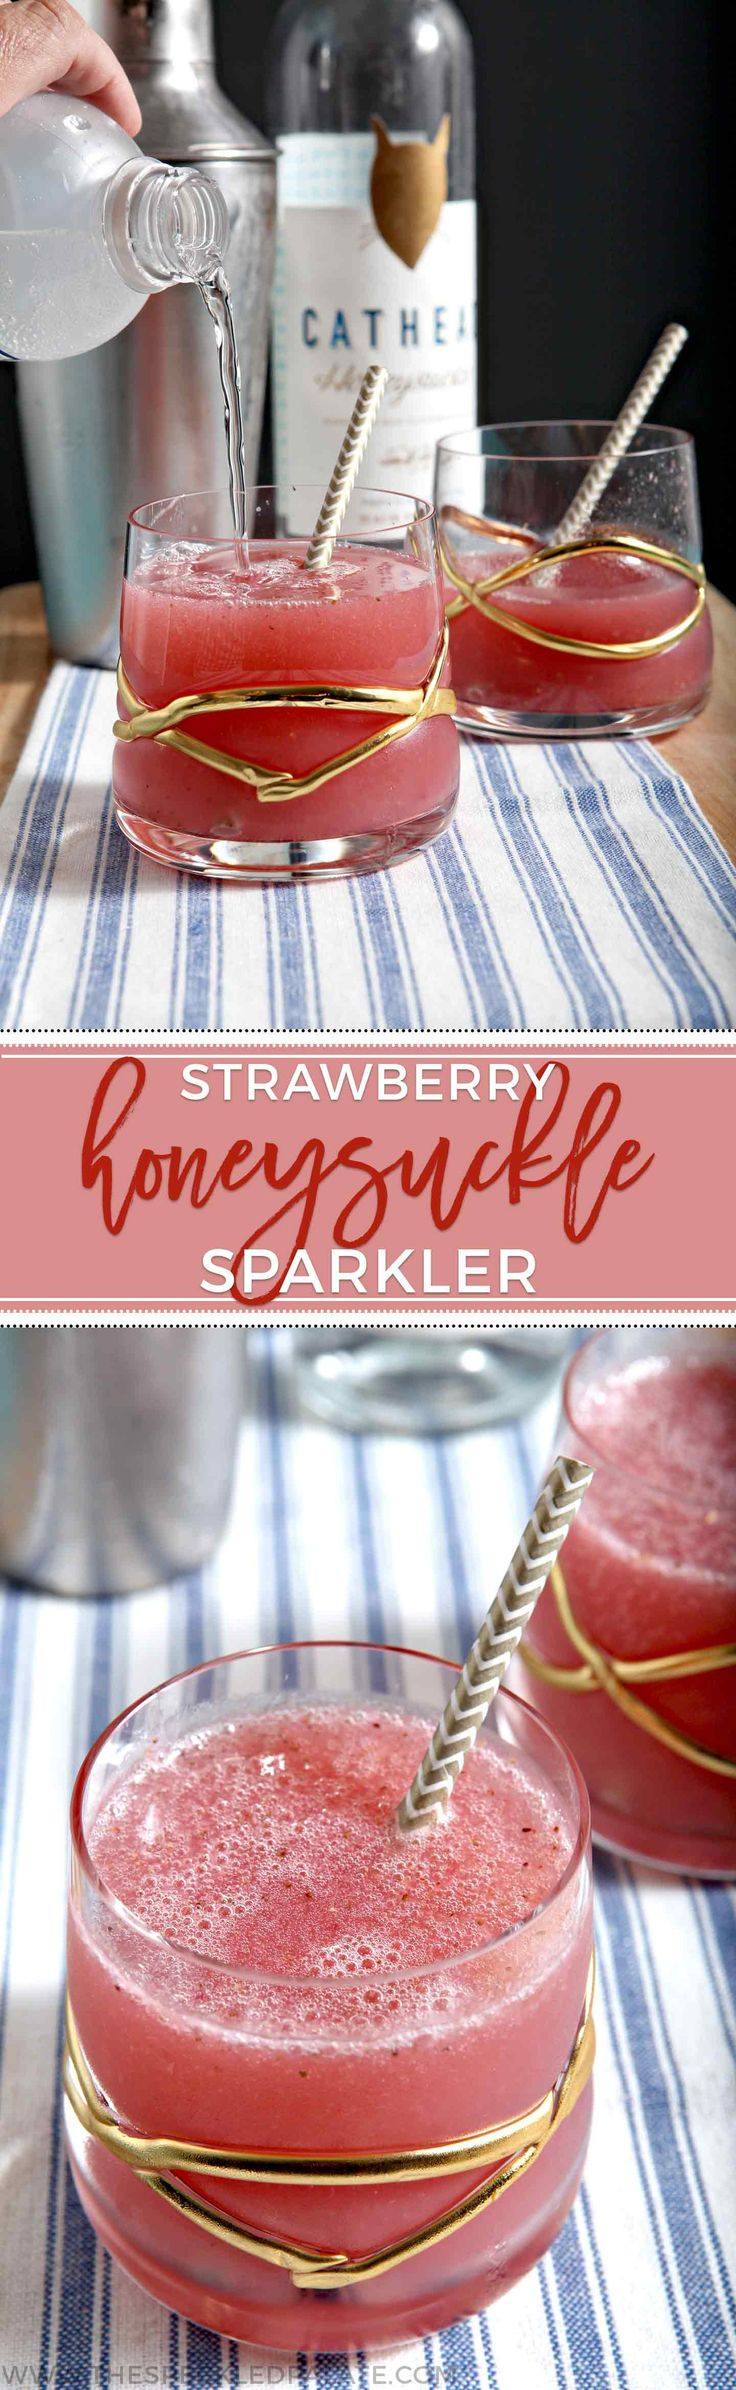 Strawberry Cocktail | Honeysuckle Cocktail | Summertime Cocktail | Summer Drink | Honeysuckle Vodka | Honeysuckle Recipe